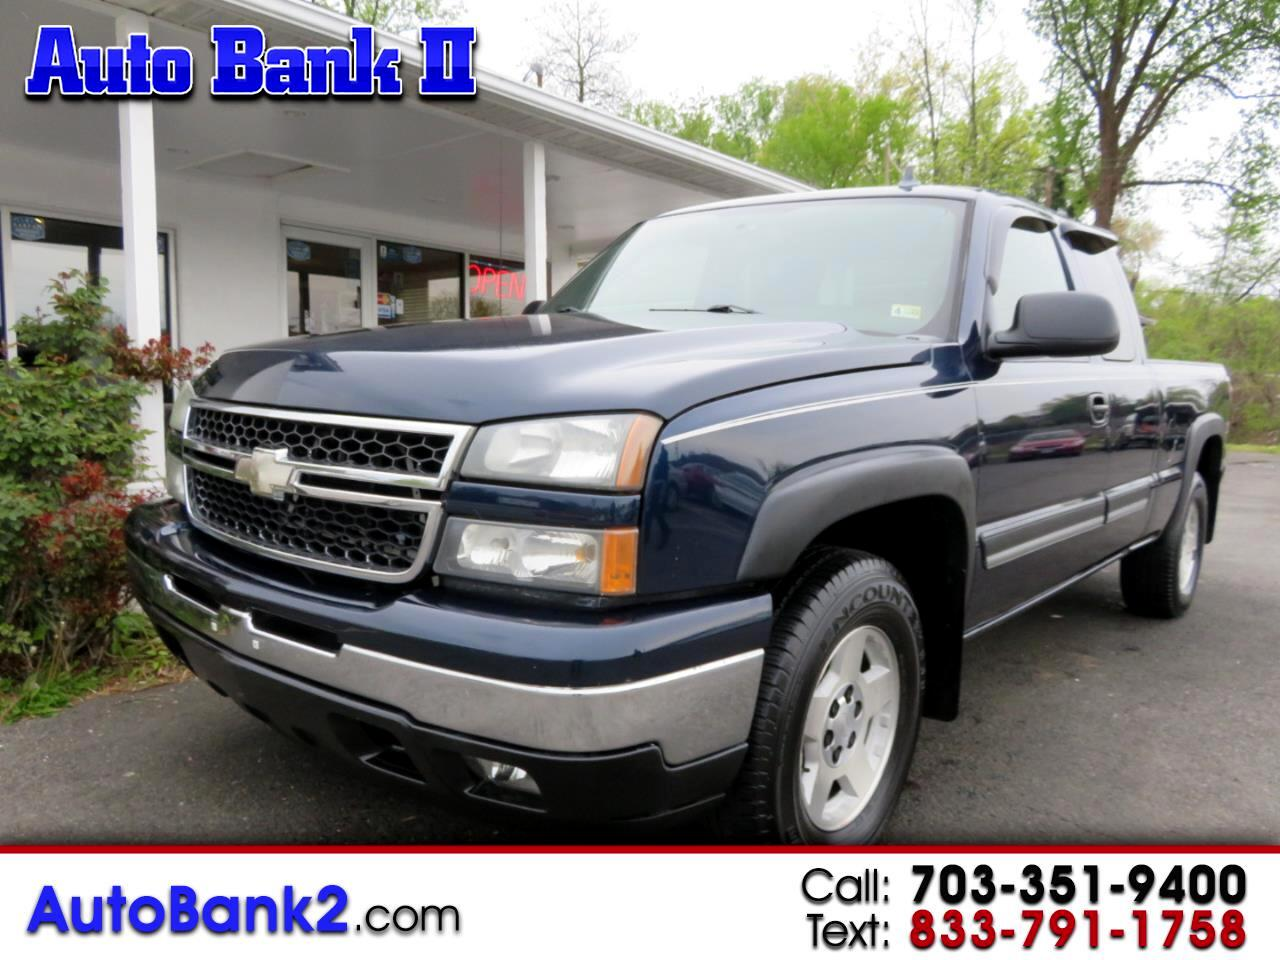 Chevrolet Silverado 1500 LT1 Ext. Cab Long Bed 4WD 2006